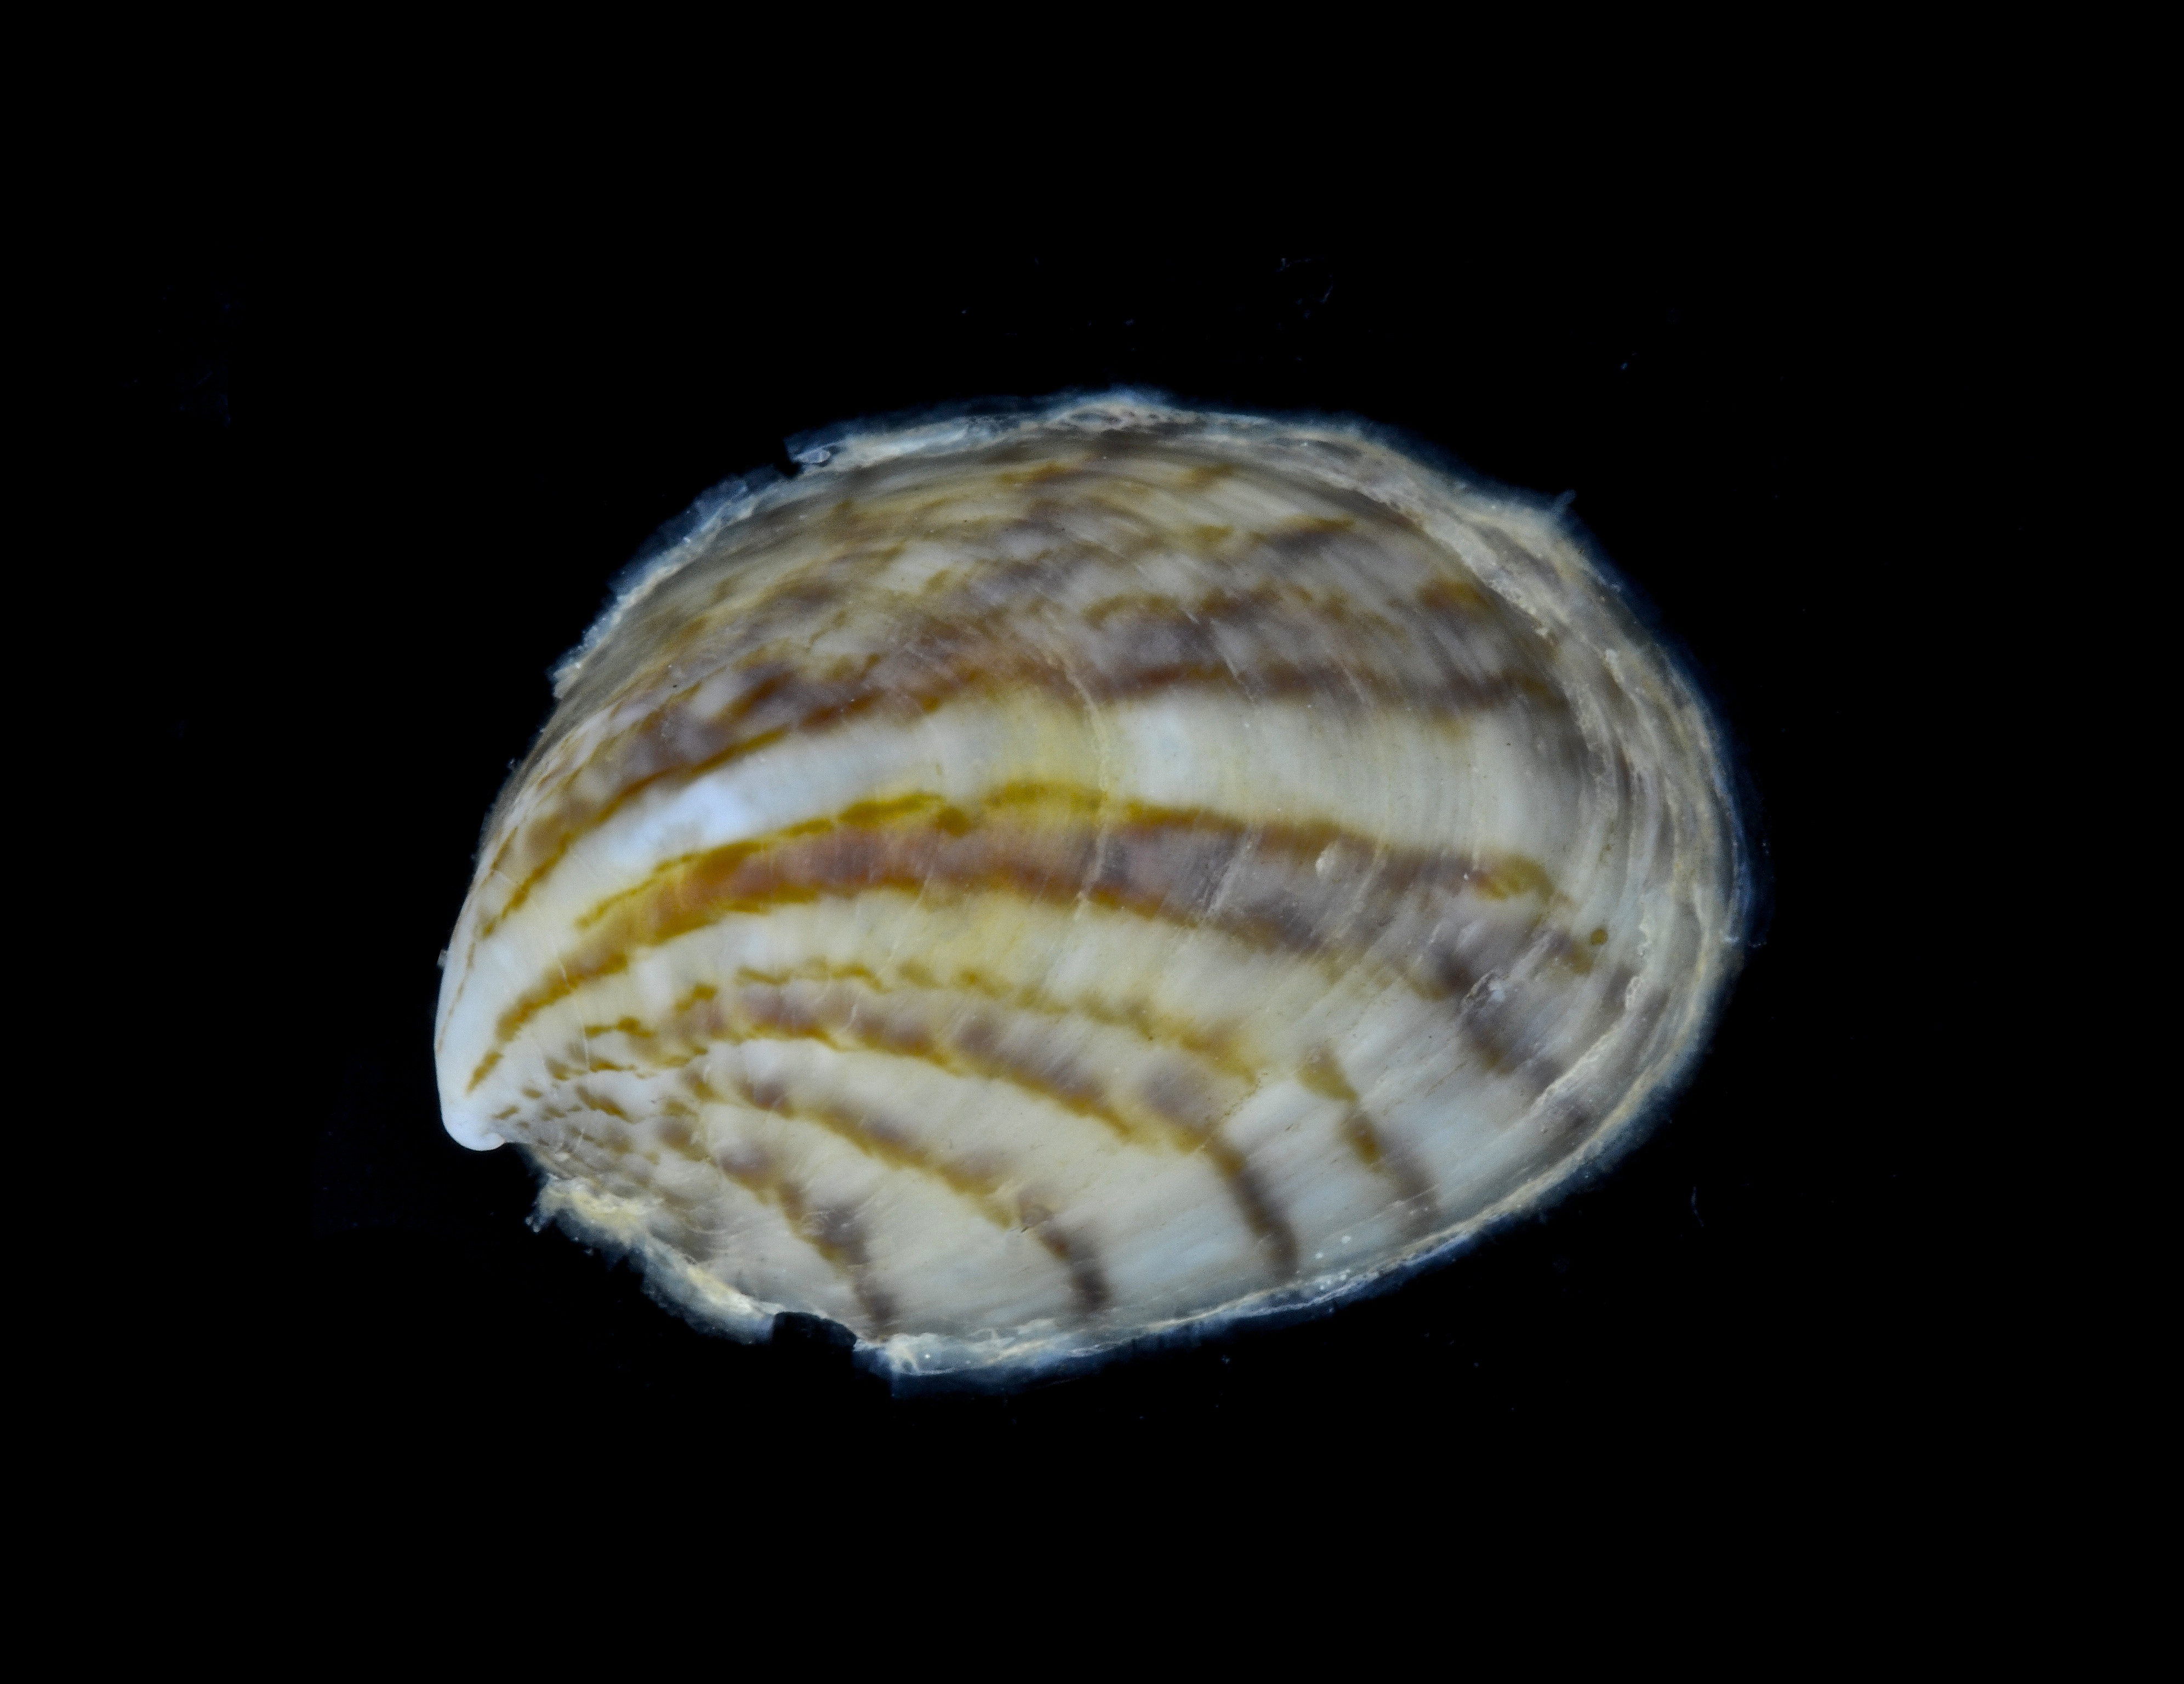 SeaShell News, 4-1-15, Atlantic Slipper Shell, Crepidula fornicata - Common Atlantic Slippersnail by Crabby Taxonomist, Via Creative Commons.